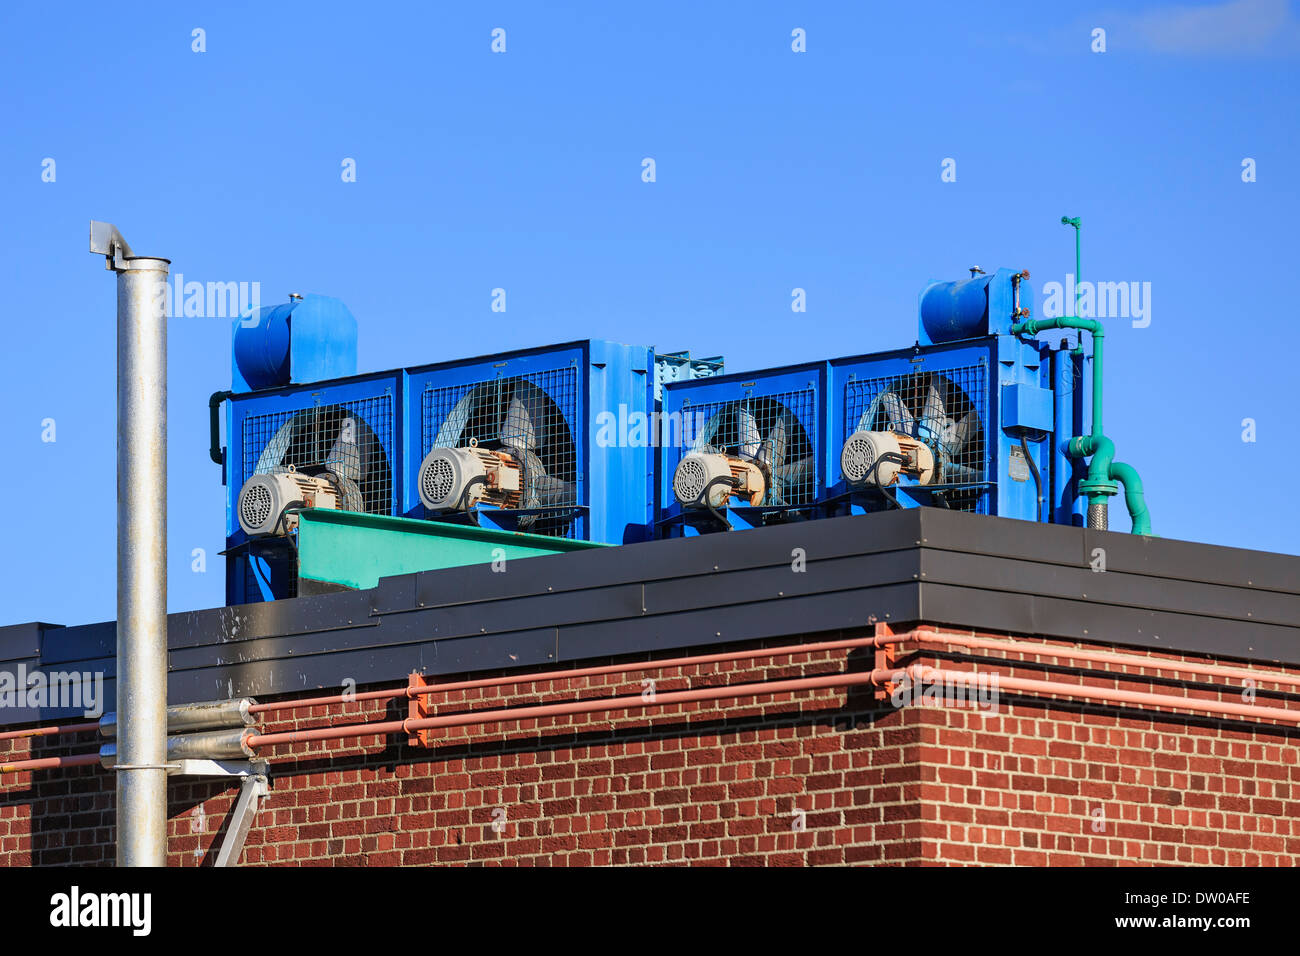 Industrial ventilation fans, on a rooftop - Stock Image